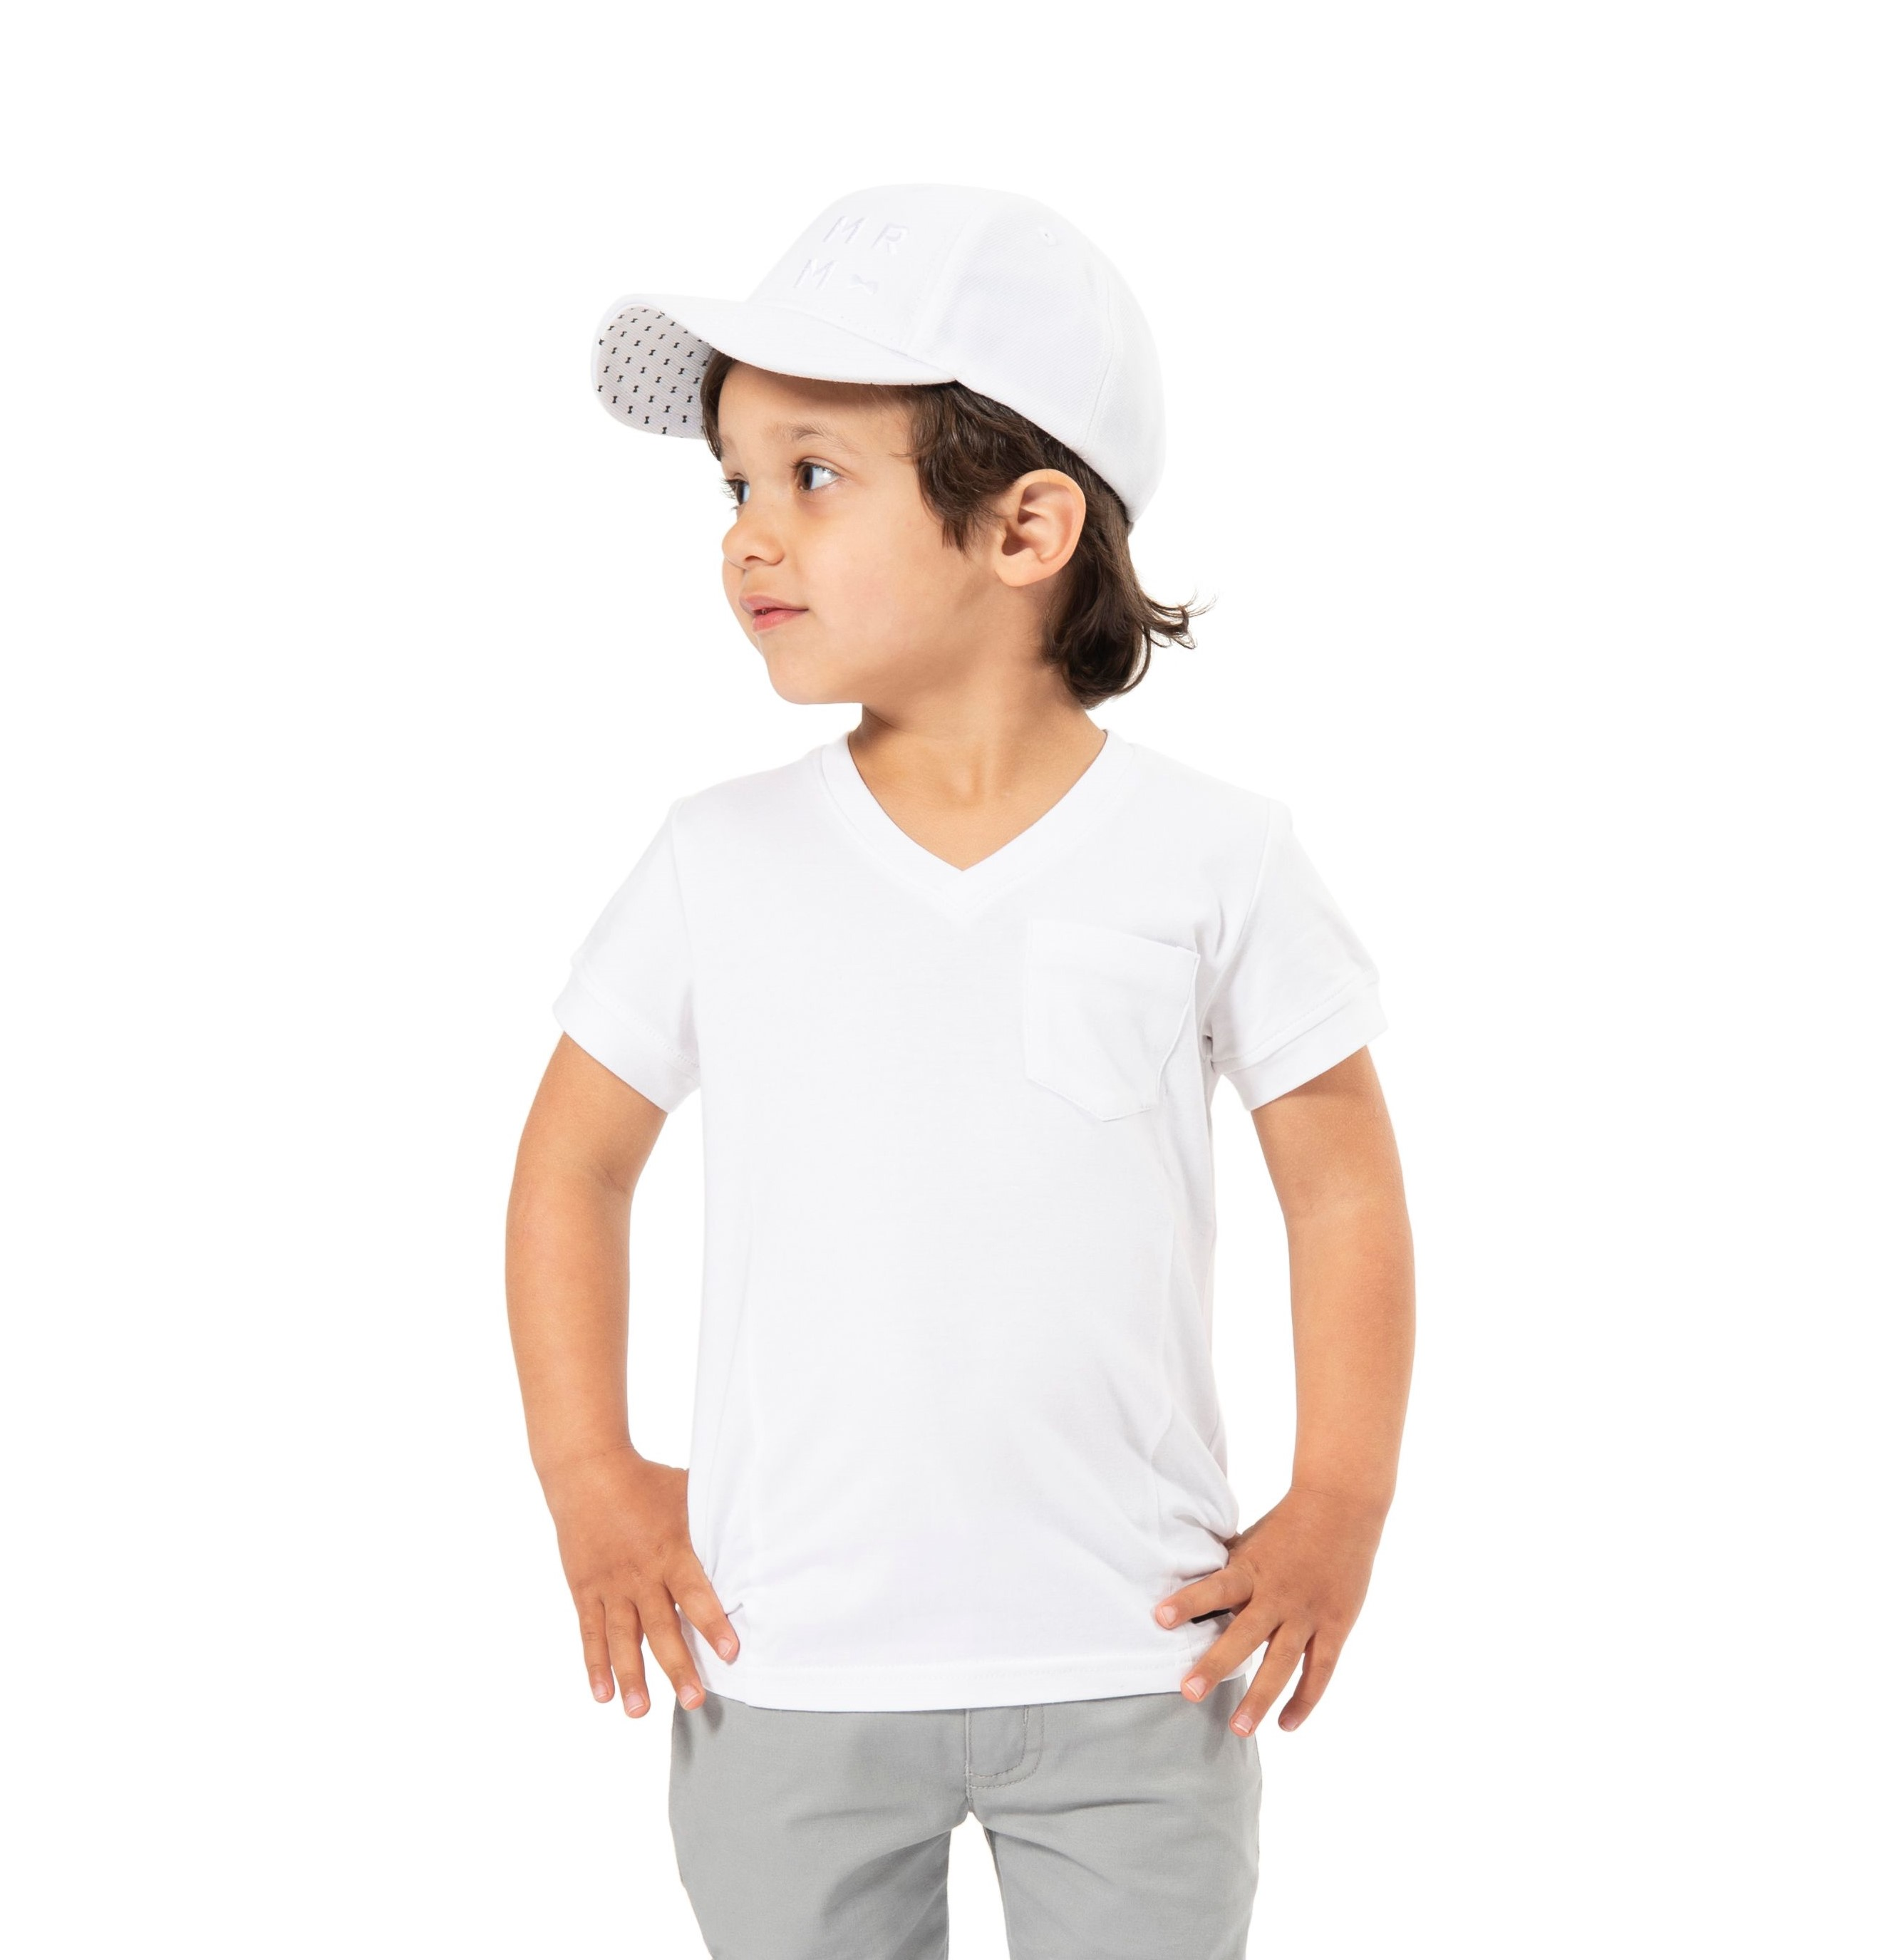 V-neck T-shirts - with pocket